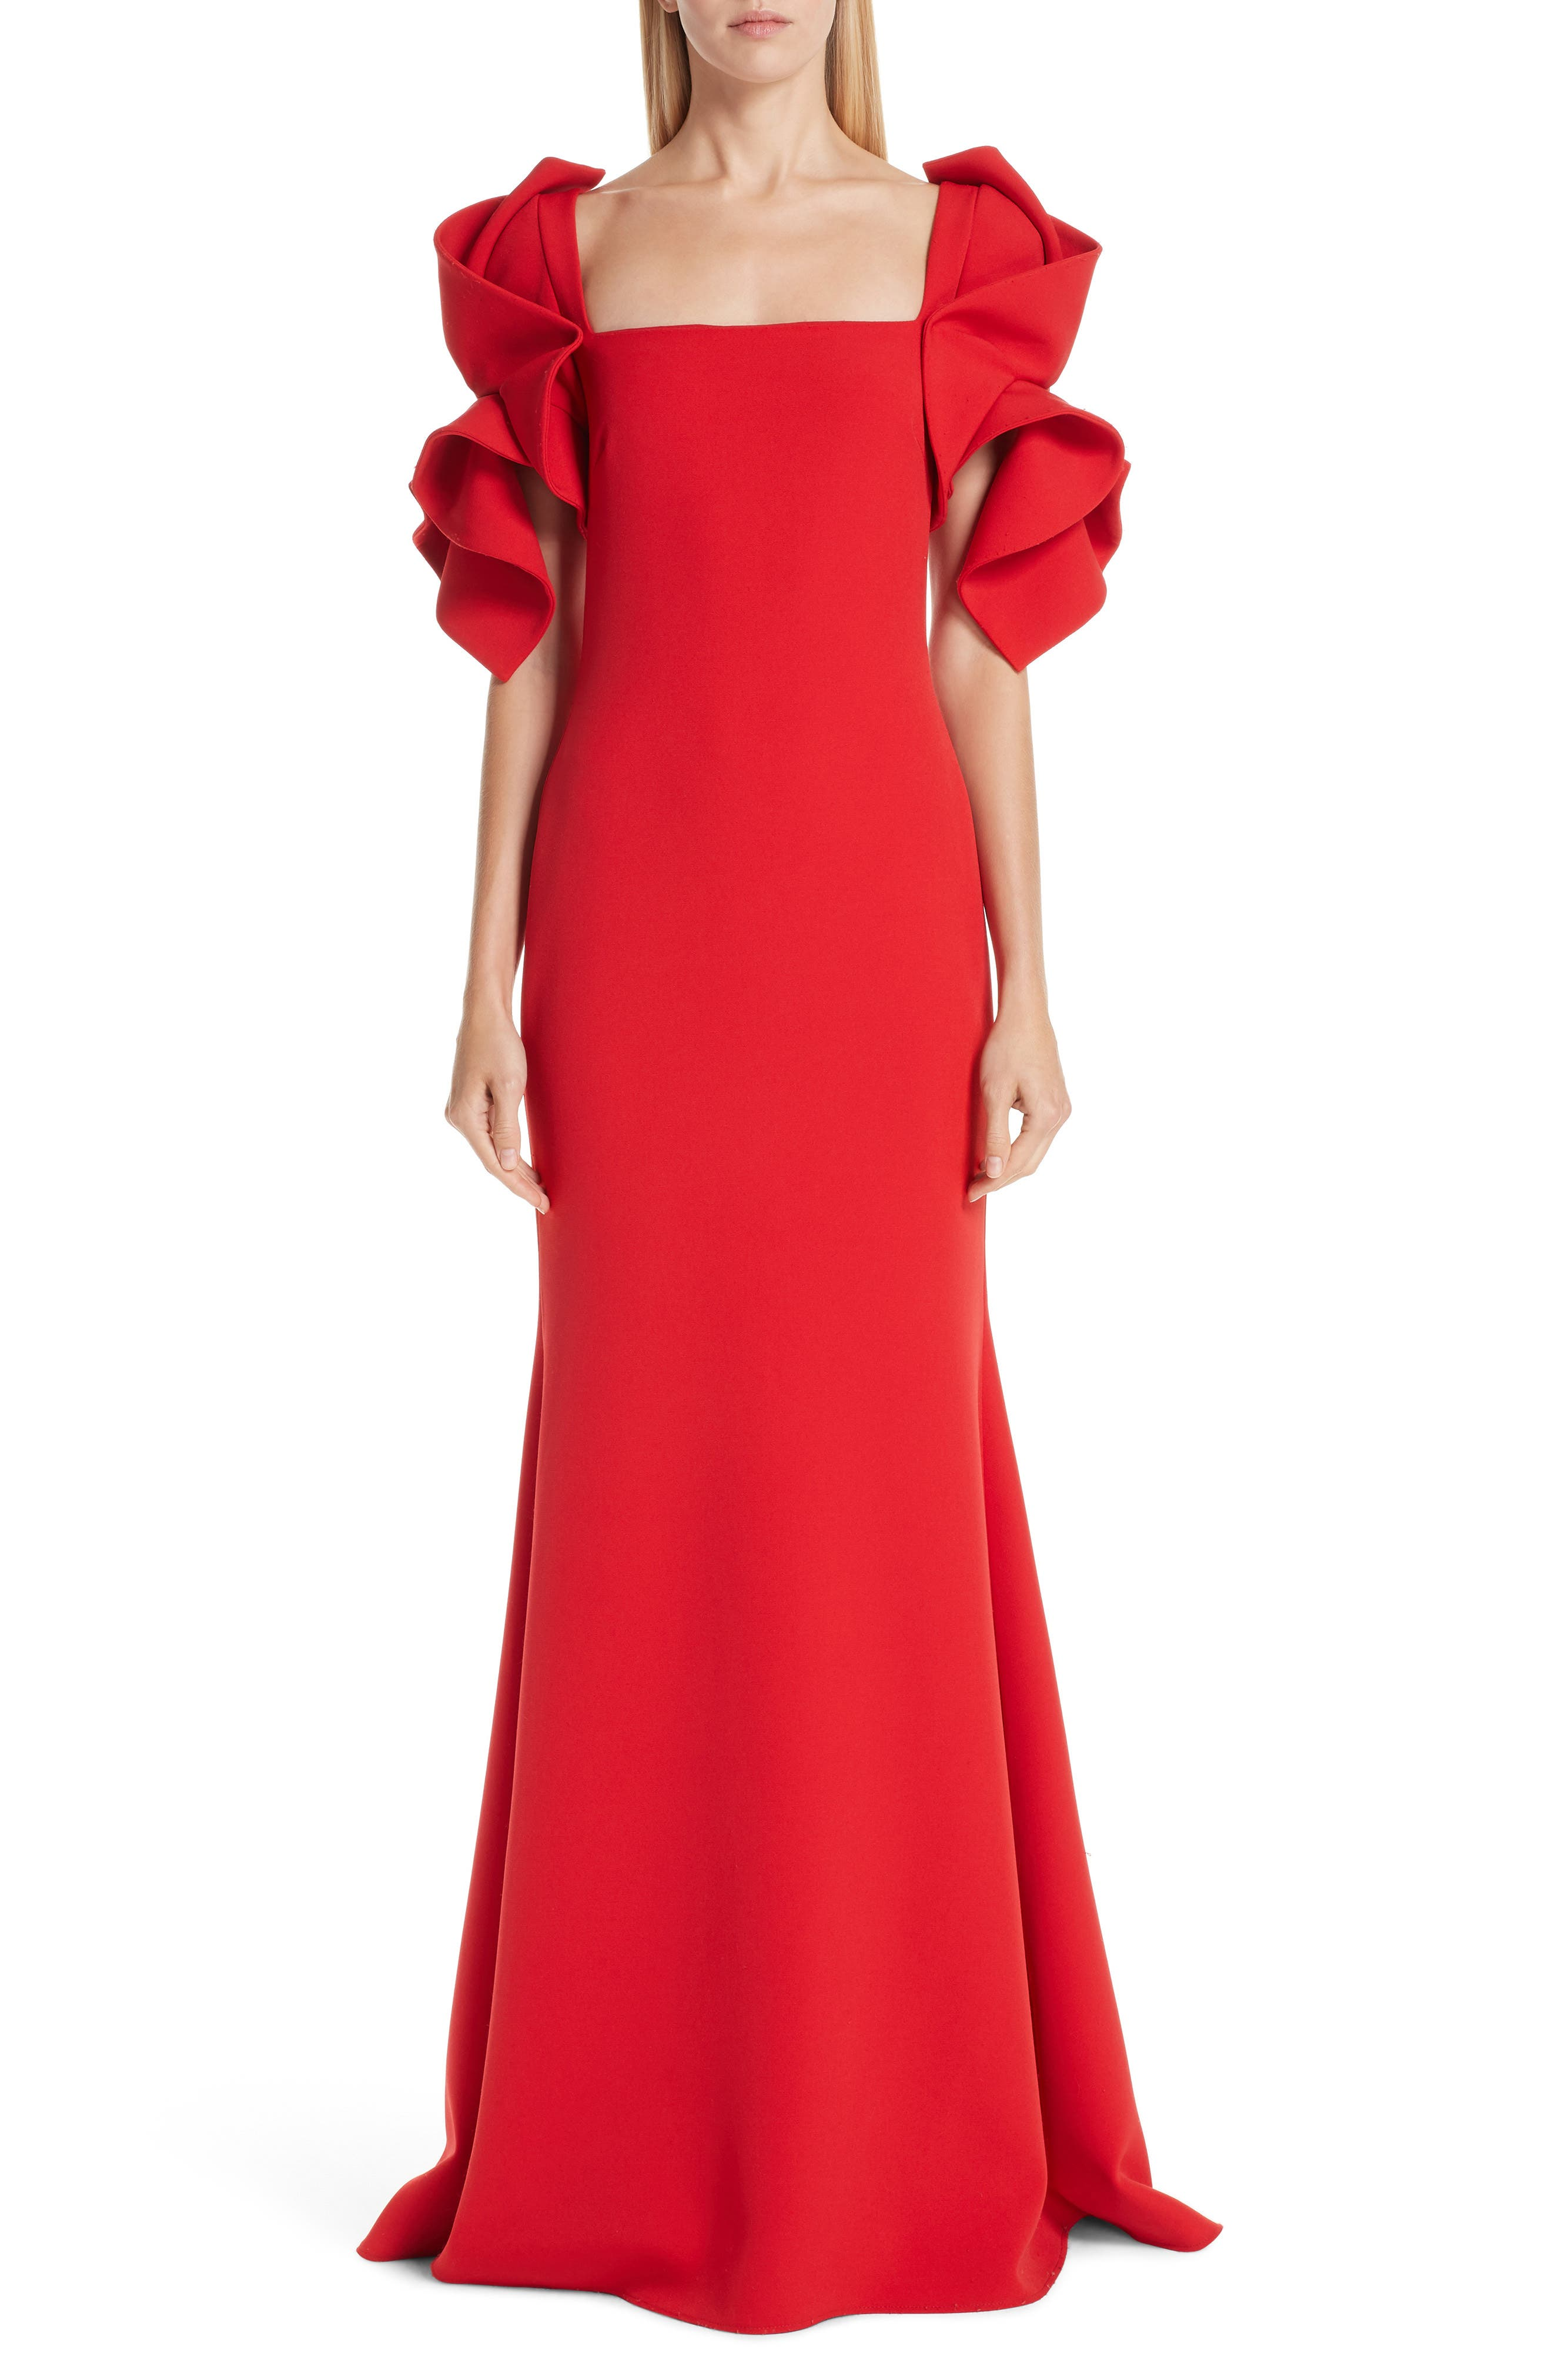 BADGLEY & MISCHKA Collection Ruffle Sleeve Evening Dress in Bright Red